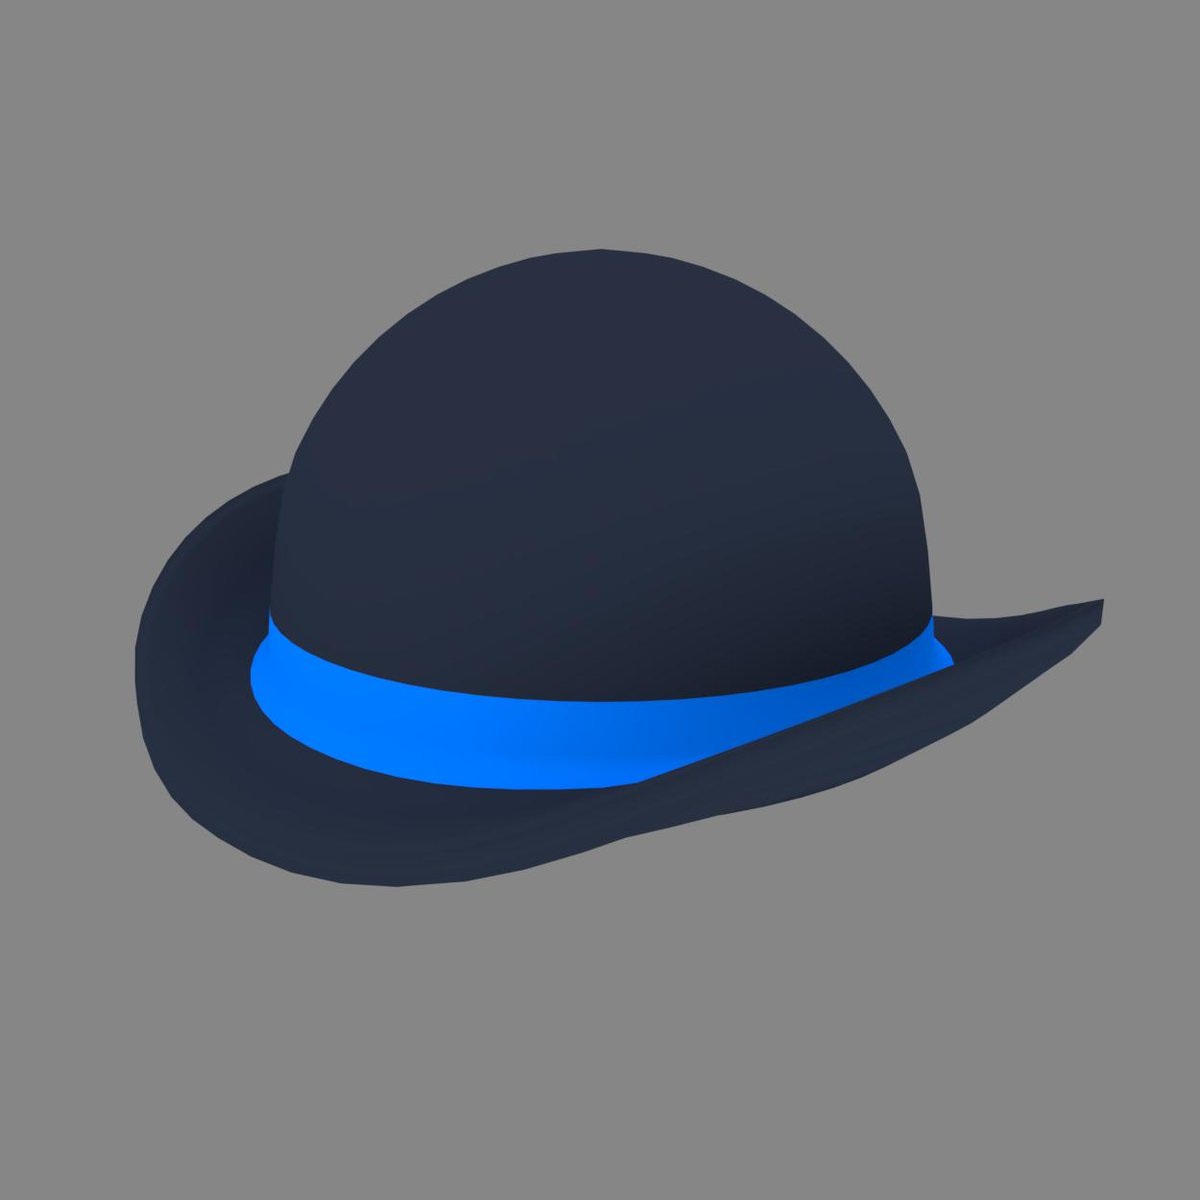 Mas On Twitter My Idea For A Hat Series In Roblox The Colored